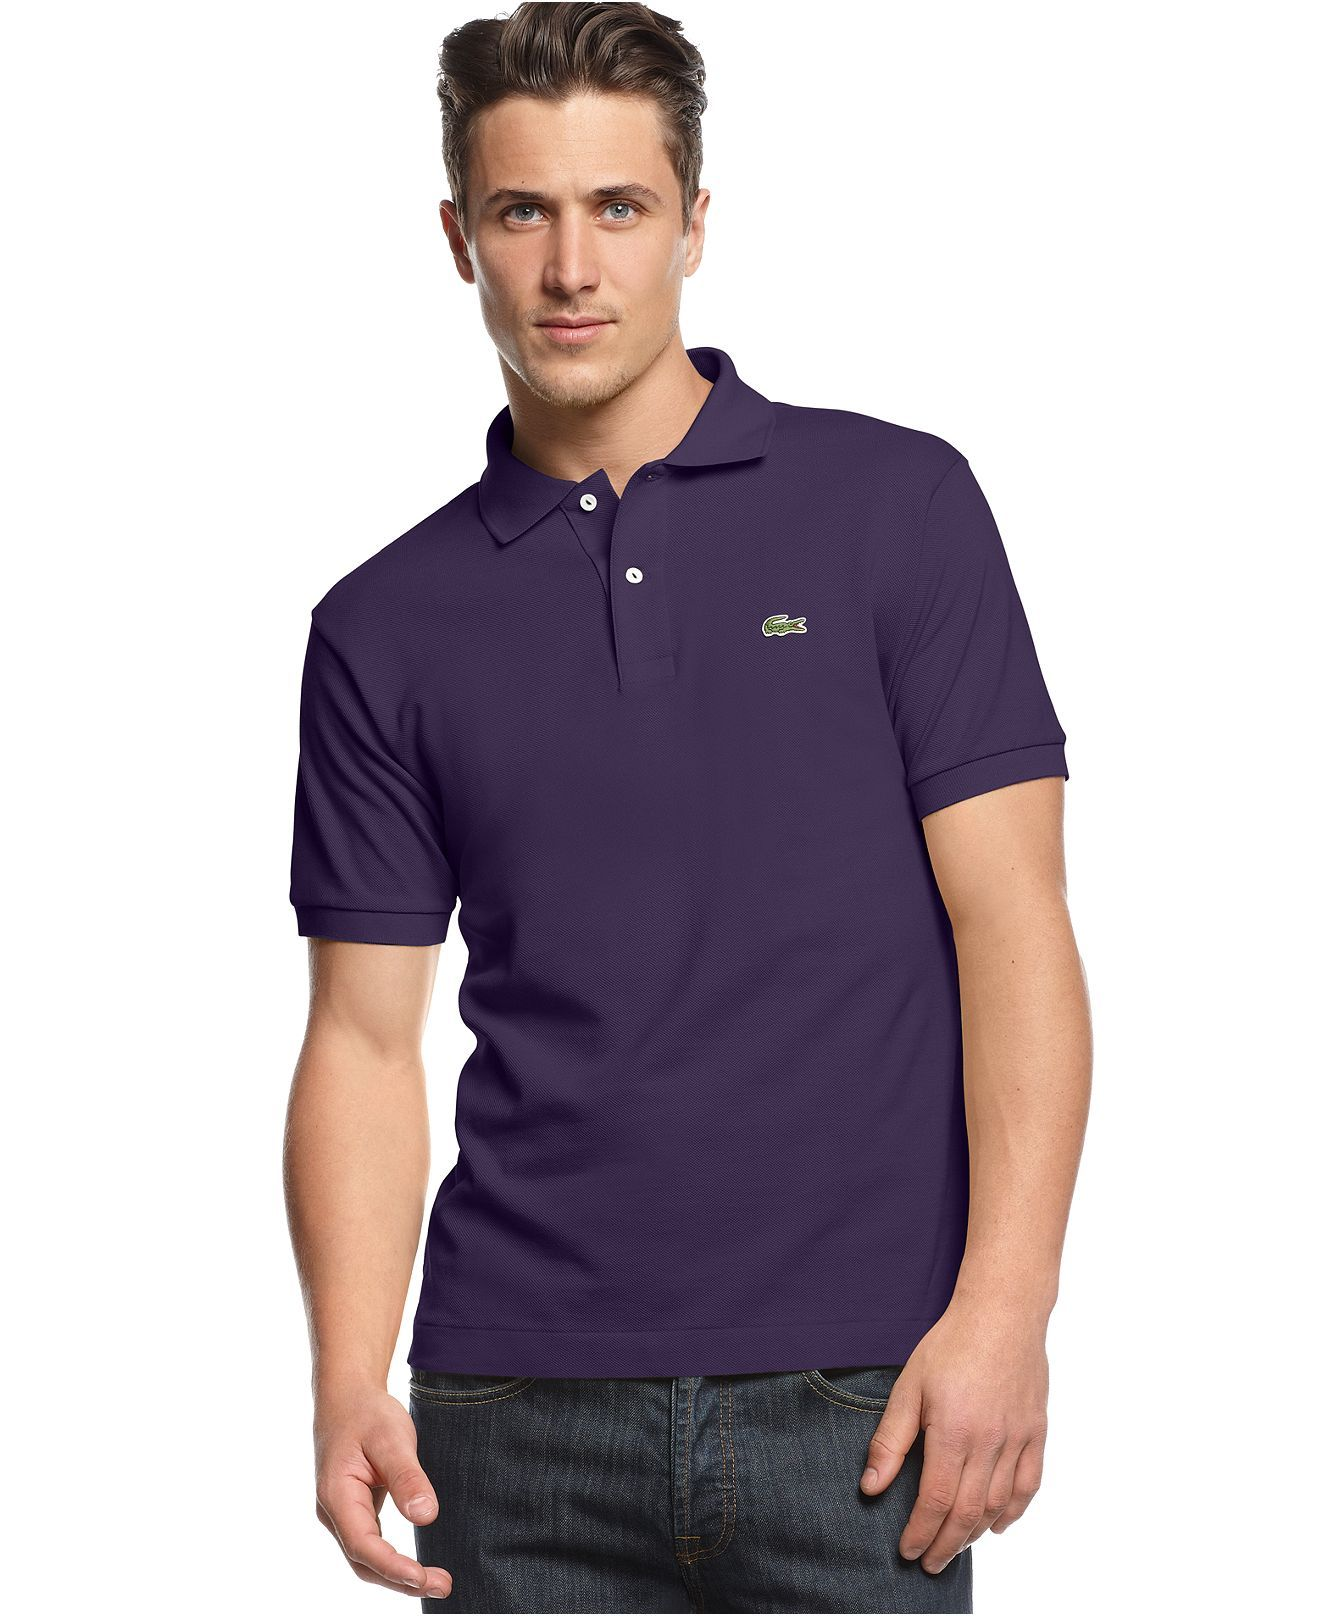 Lacoste clothing online